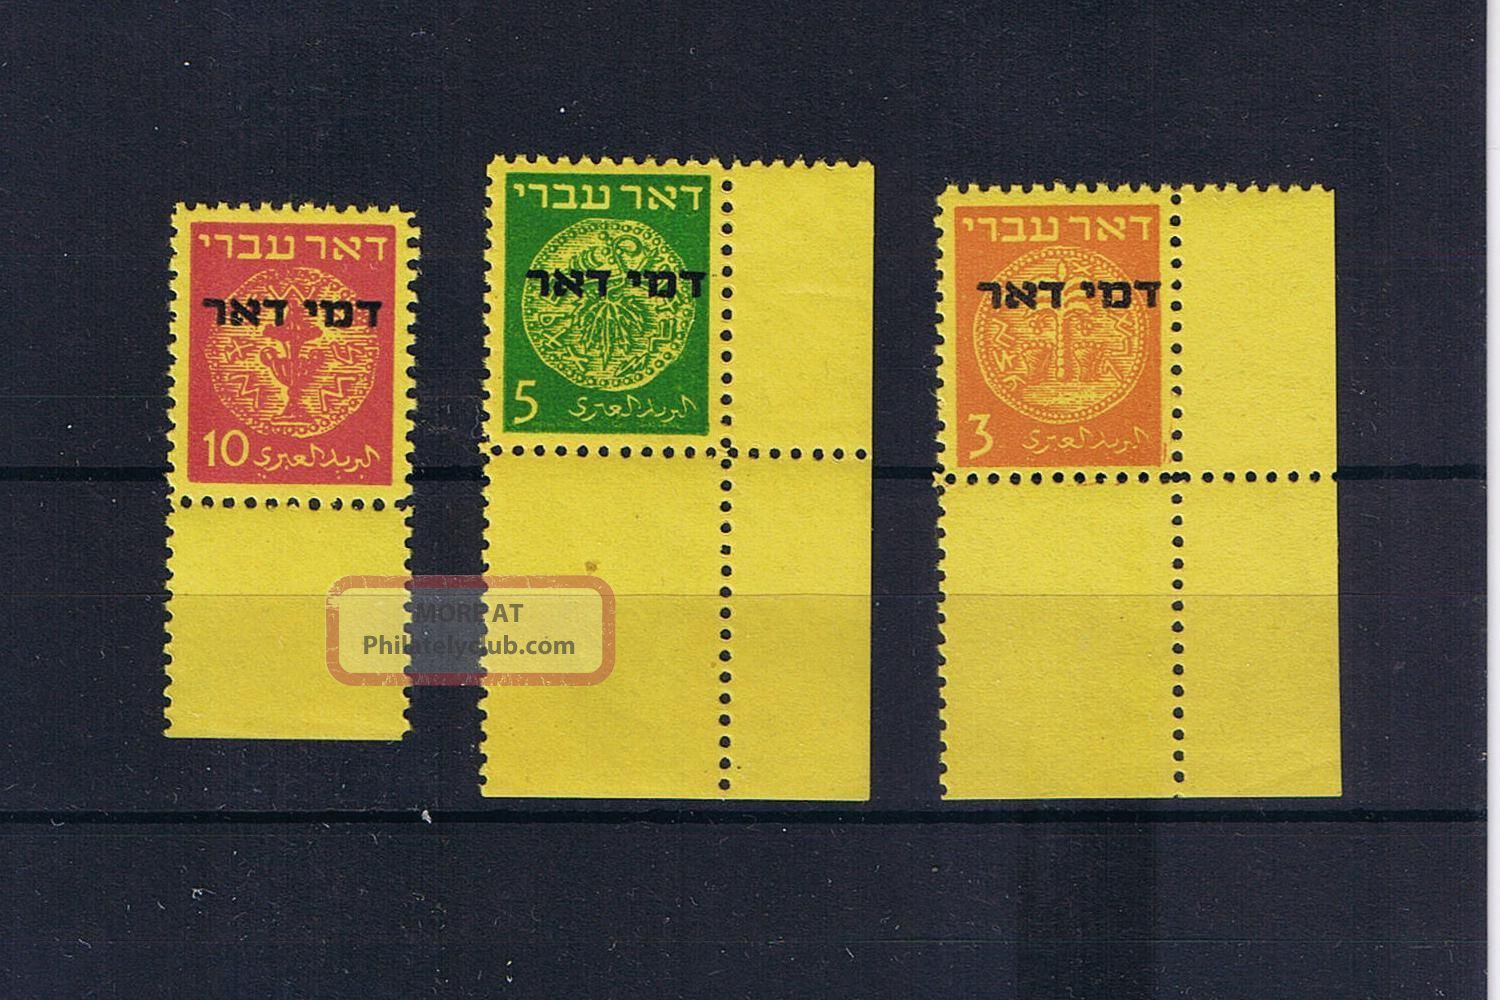 Israel 1948 First Postage Due 3 - 10 Mil Tab Scott J1 - J3 Bale Pd1 - Pd3 Cv 1000$+ Middle East photo